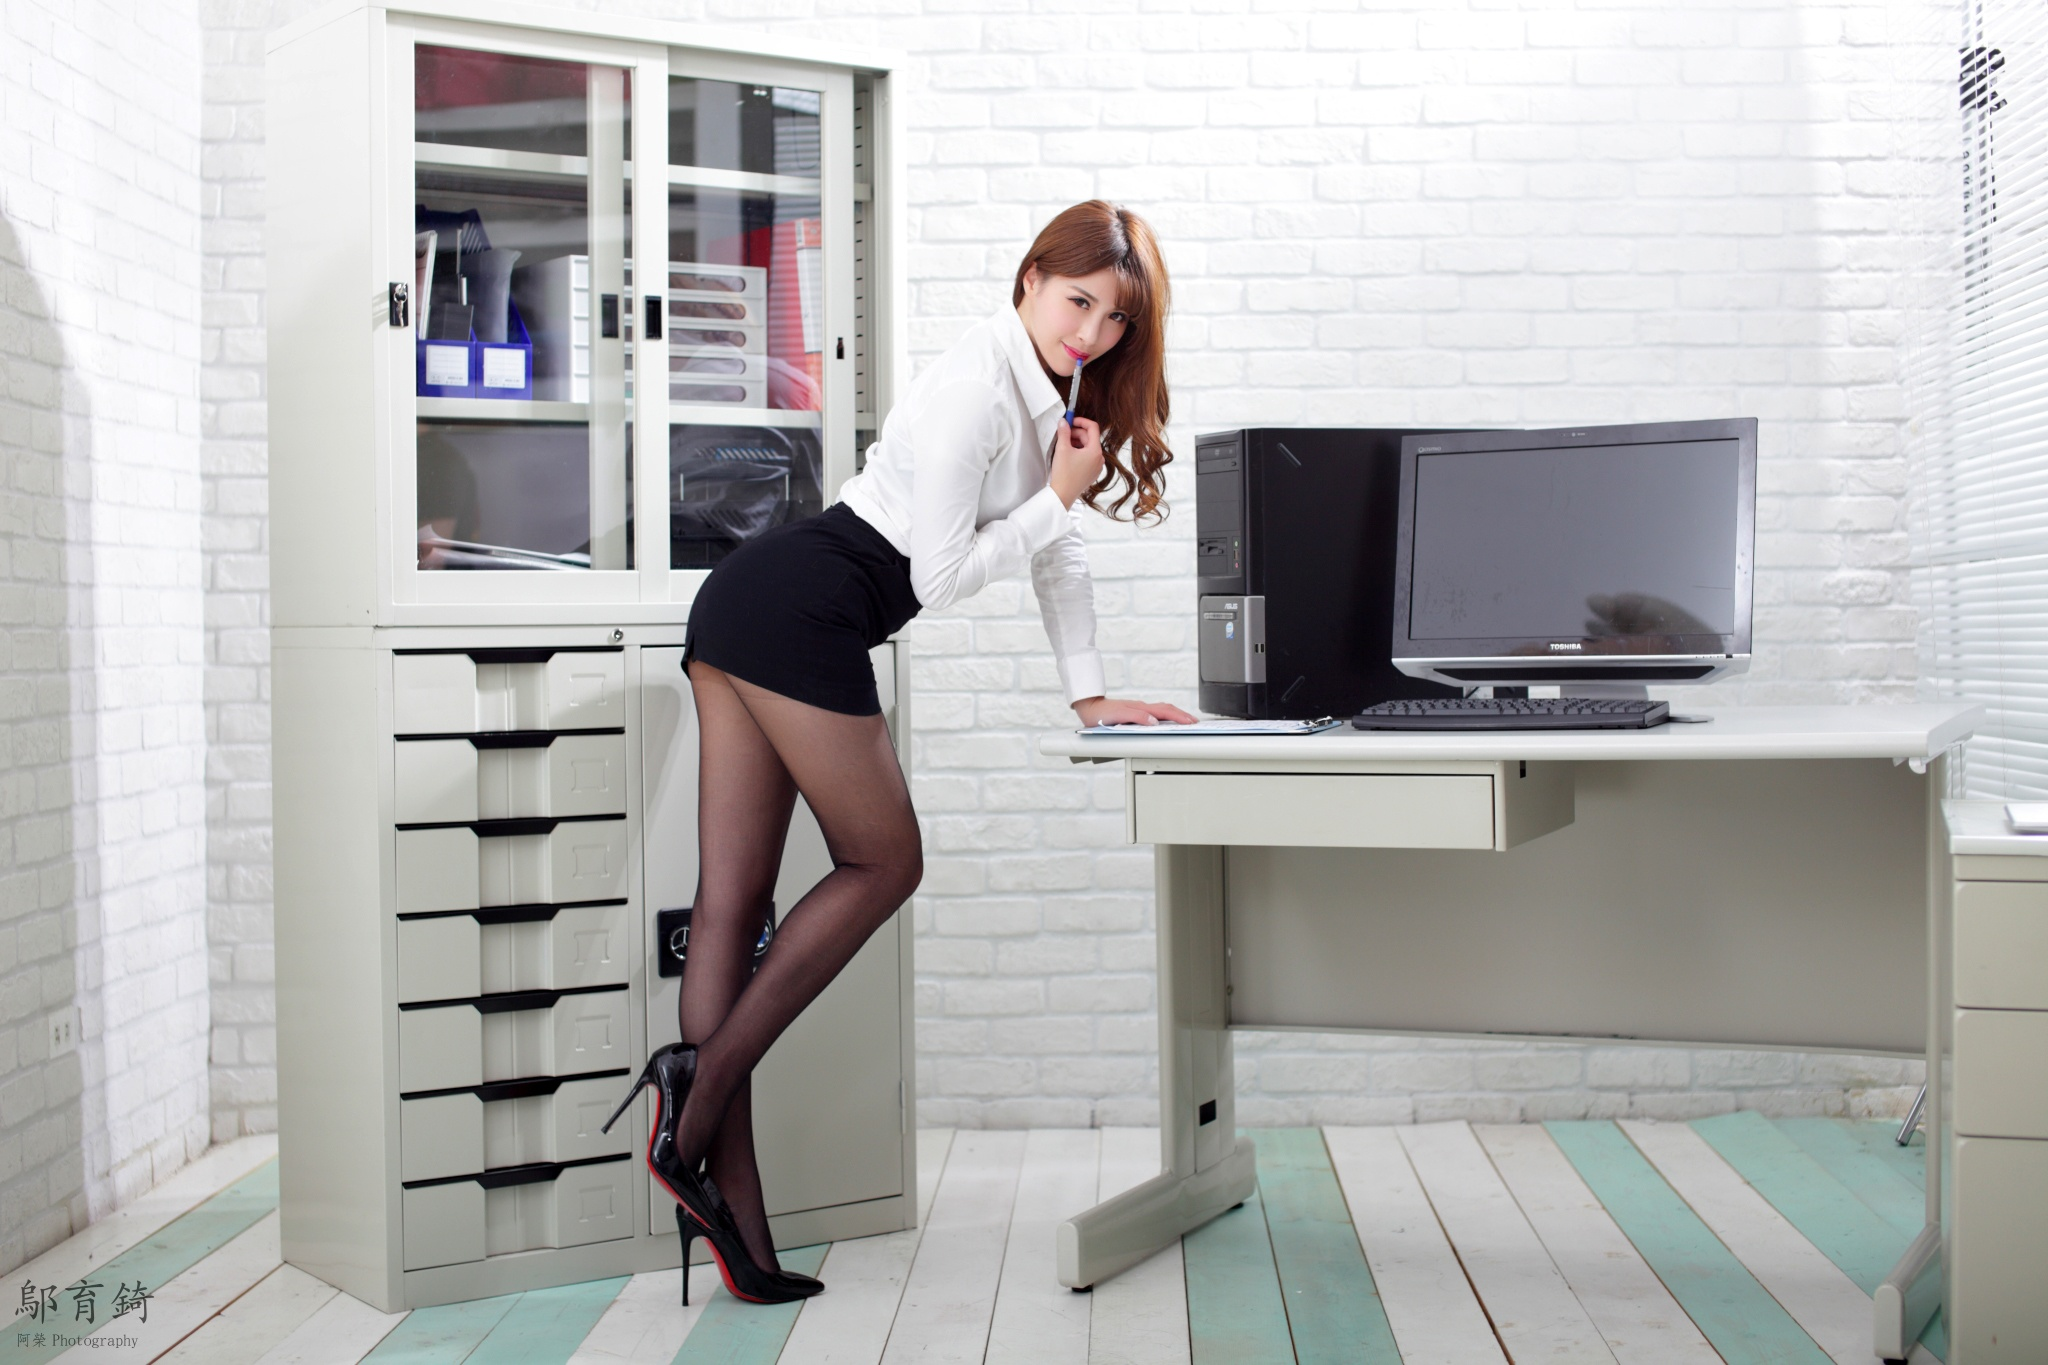 spanic-hot-office-girl-wet-sex-videos